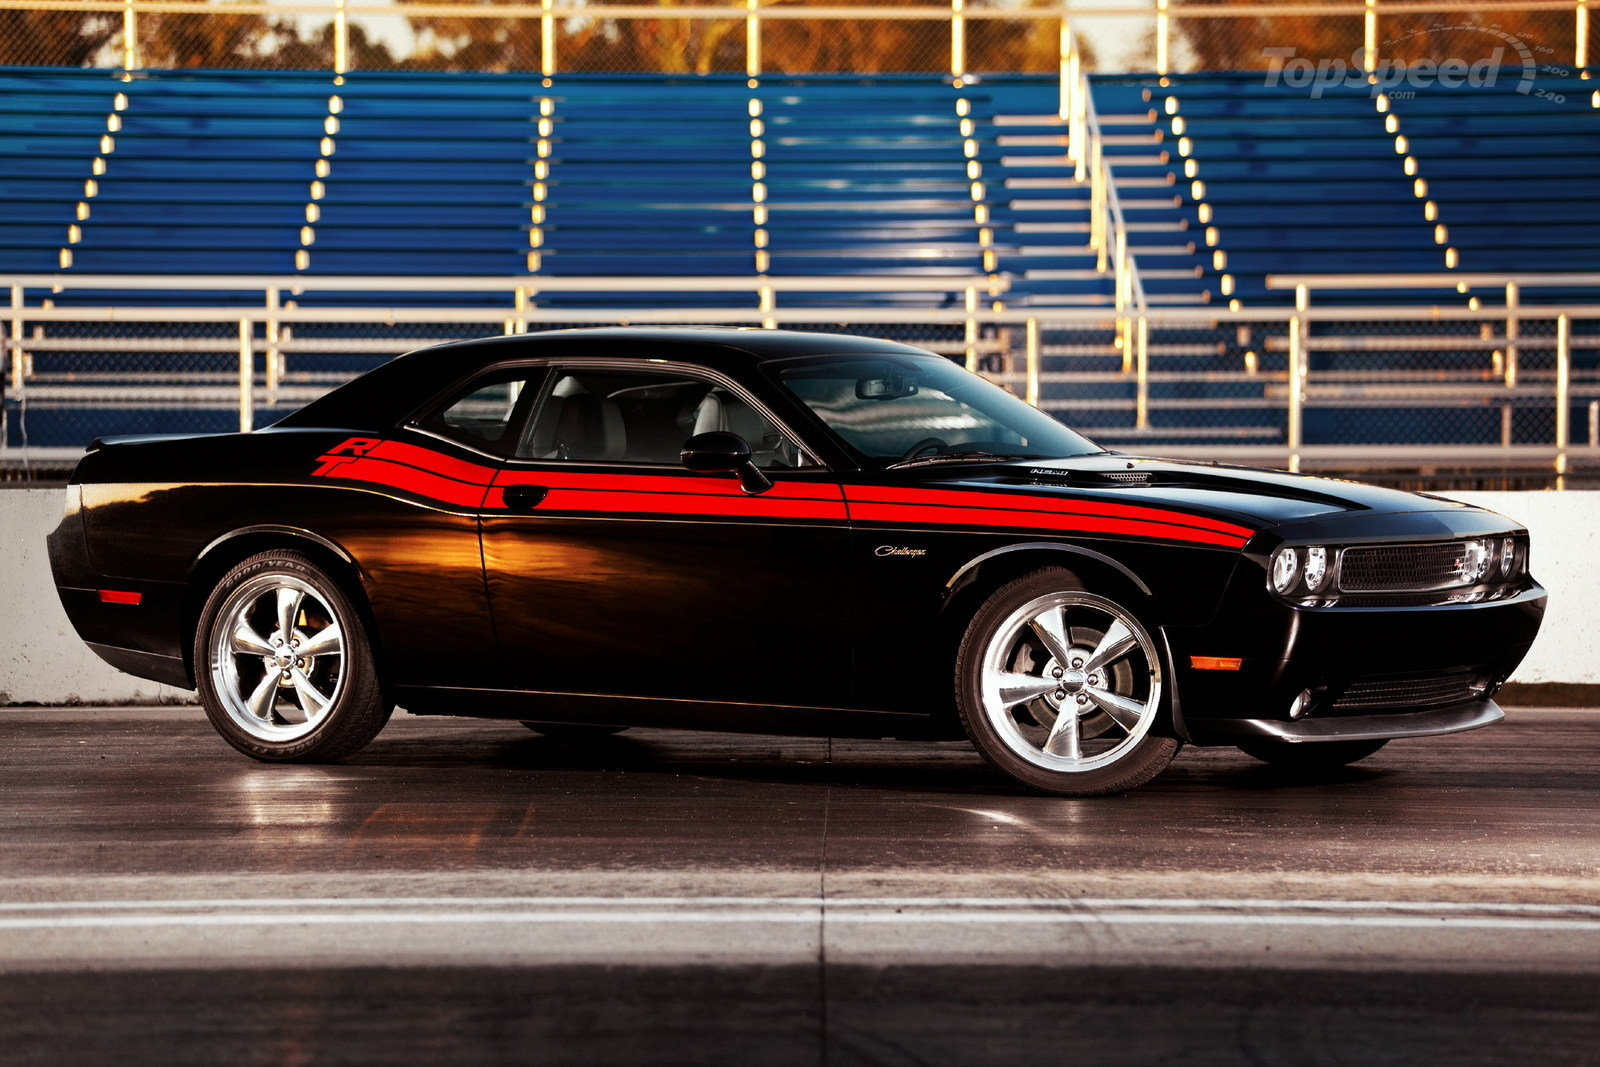 predicted that dodge will released their all new 2014 dodge challenger